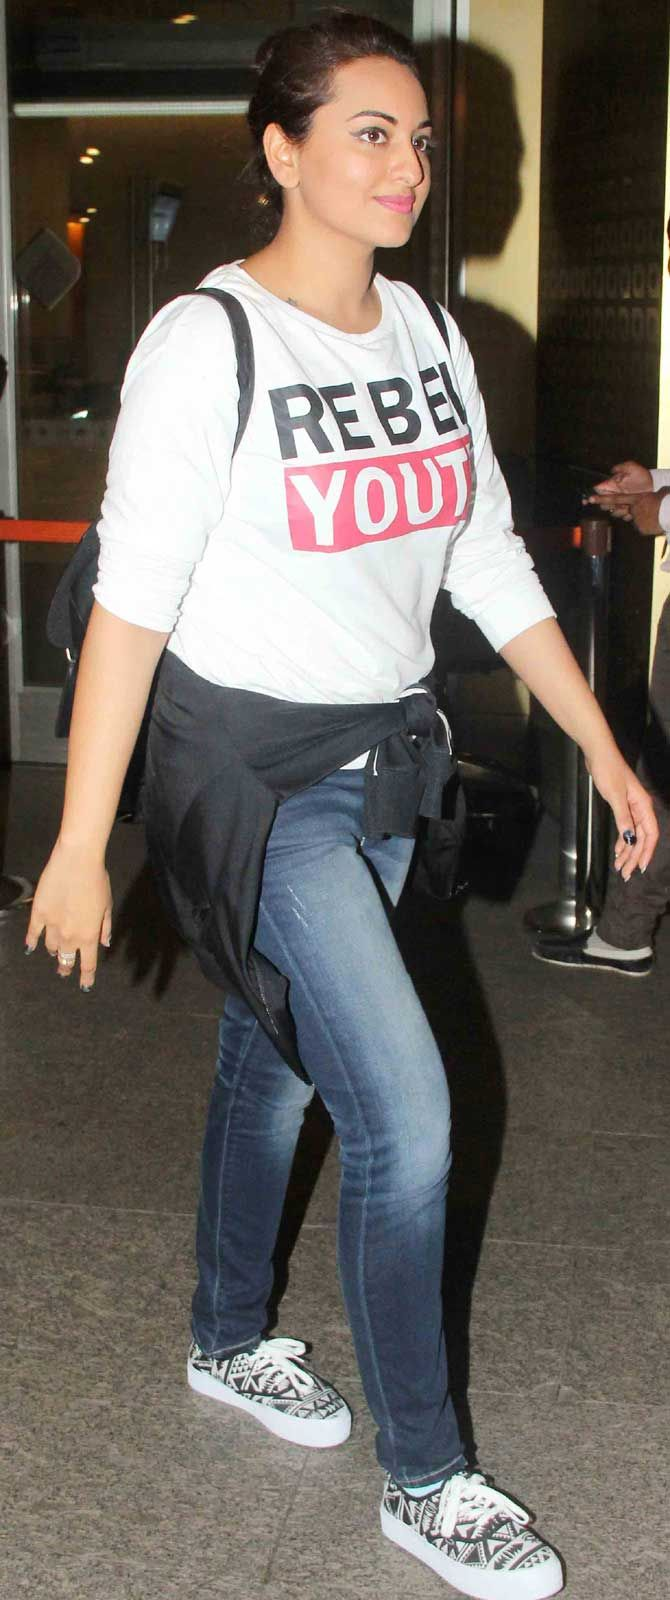 Sonakshi Sinha spotted at Mumbai airport while returning from #IIFAAwards2015 held in Malaysia. #Bollywood #Fashion #Style #Beauty